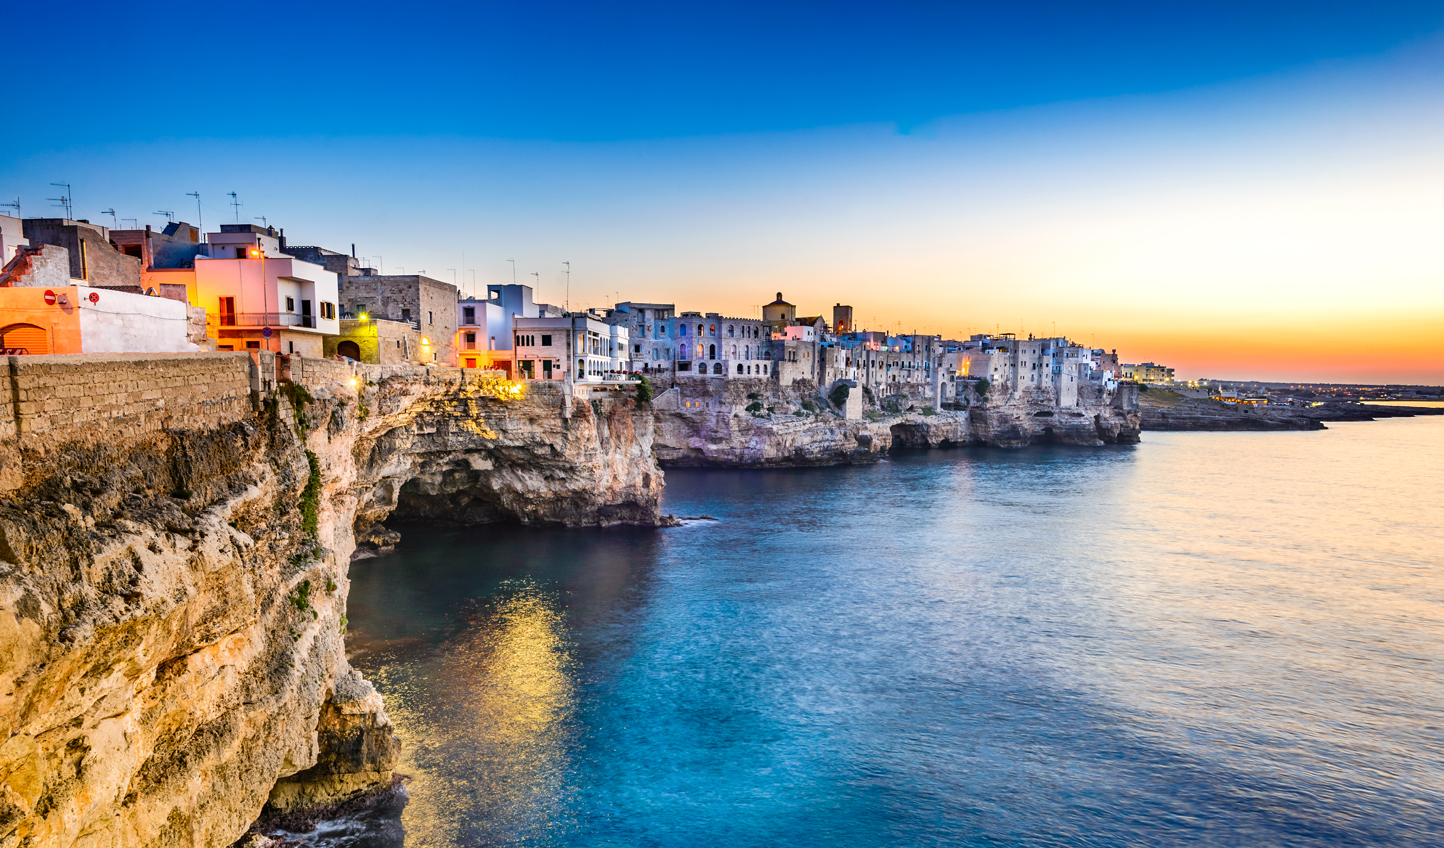 Watch the sun dip down over this picturesque Italian scene